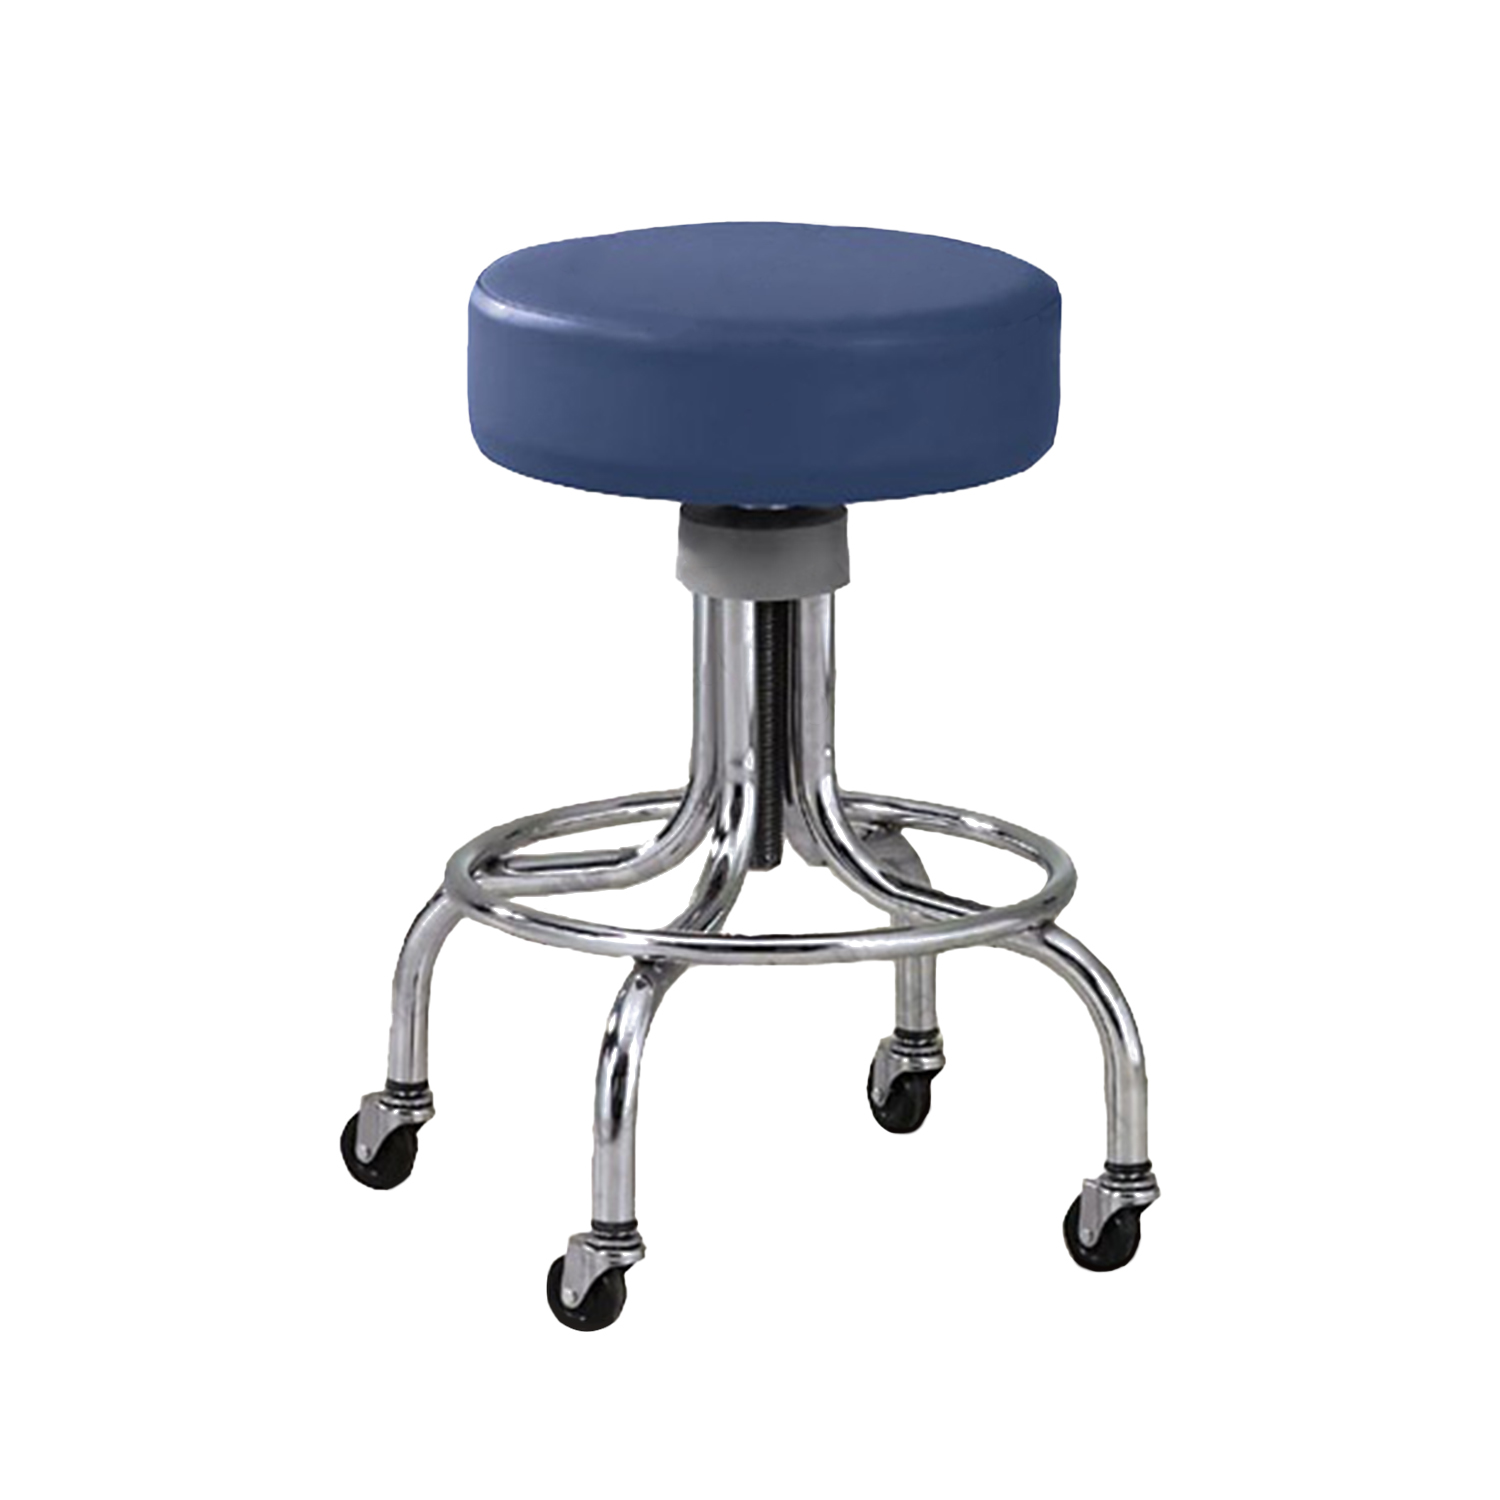 Extra Tall Chrome Base Stool